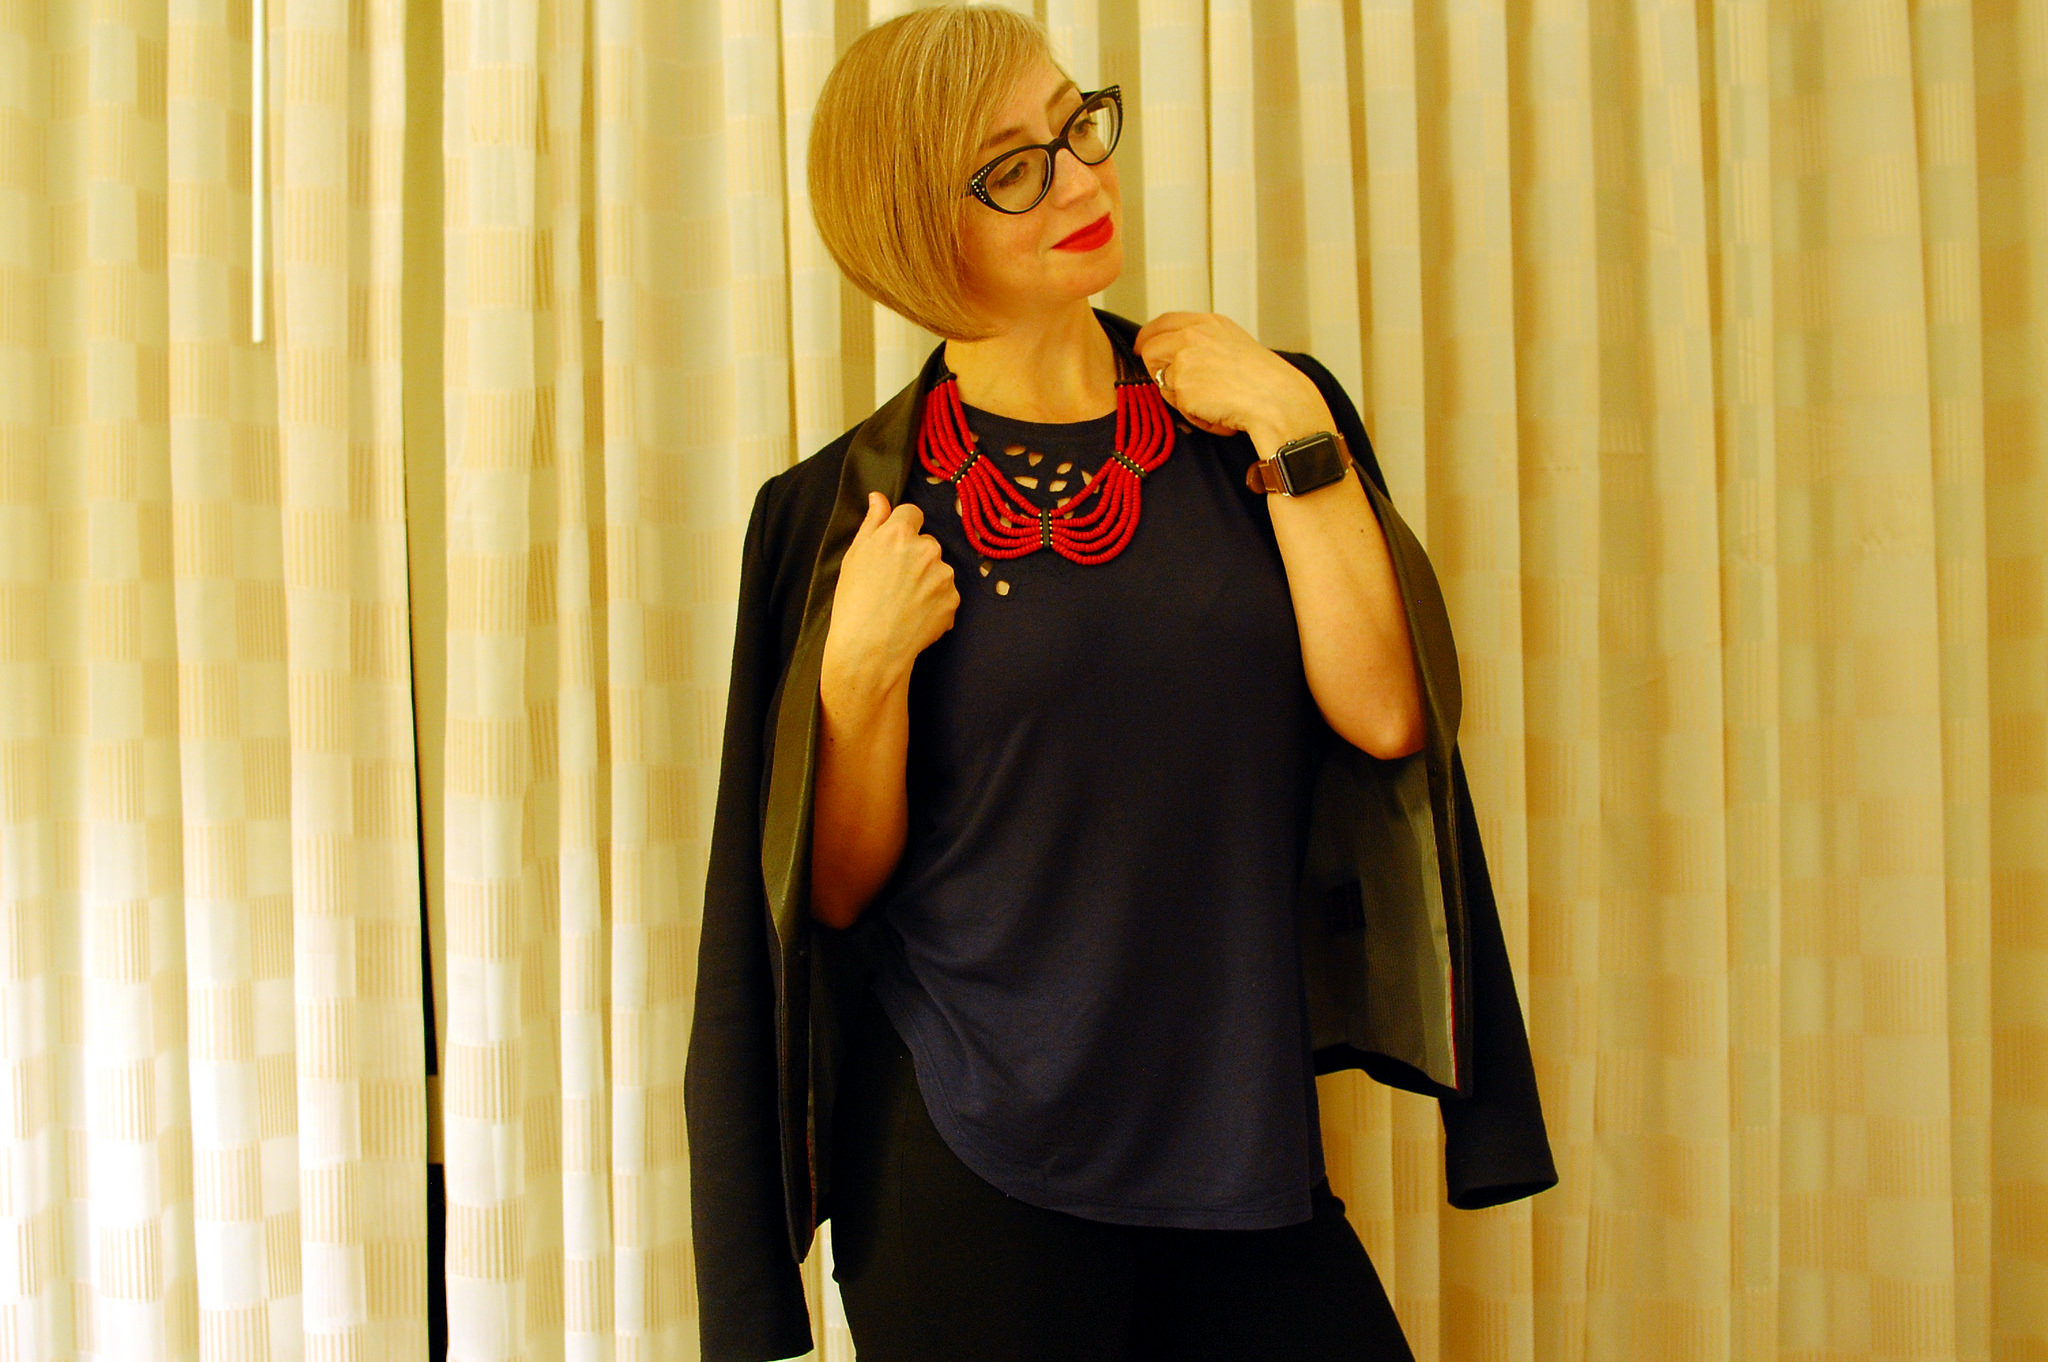 black and navy red beaded necklace travel outfit ootd whatiwore2day